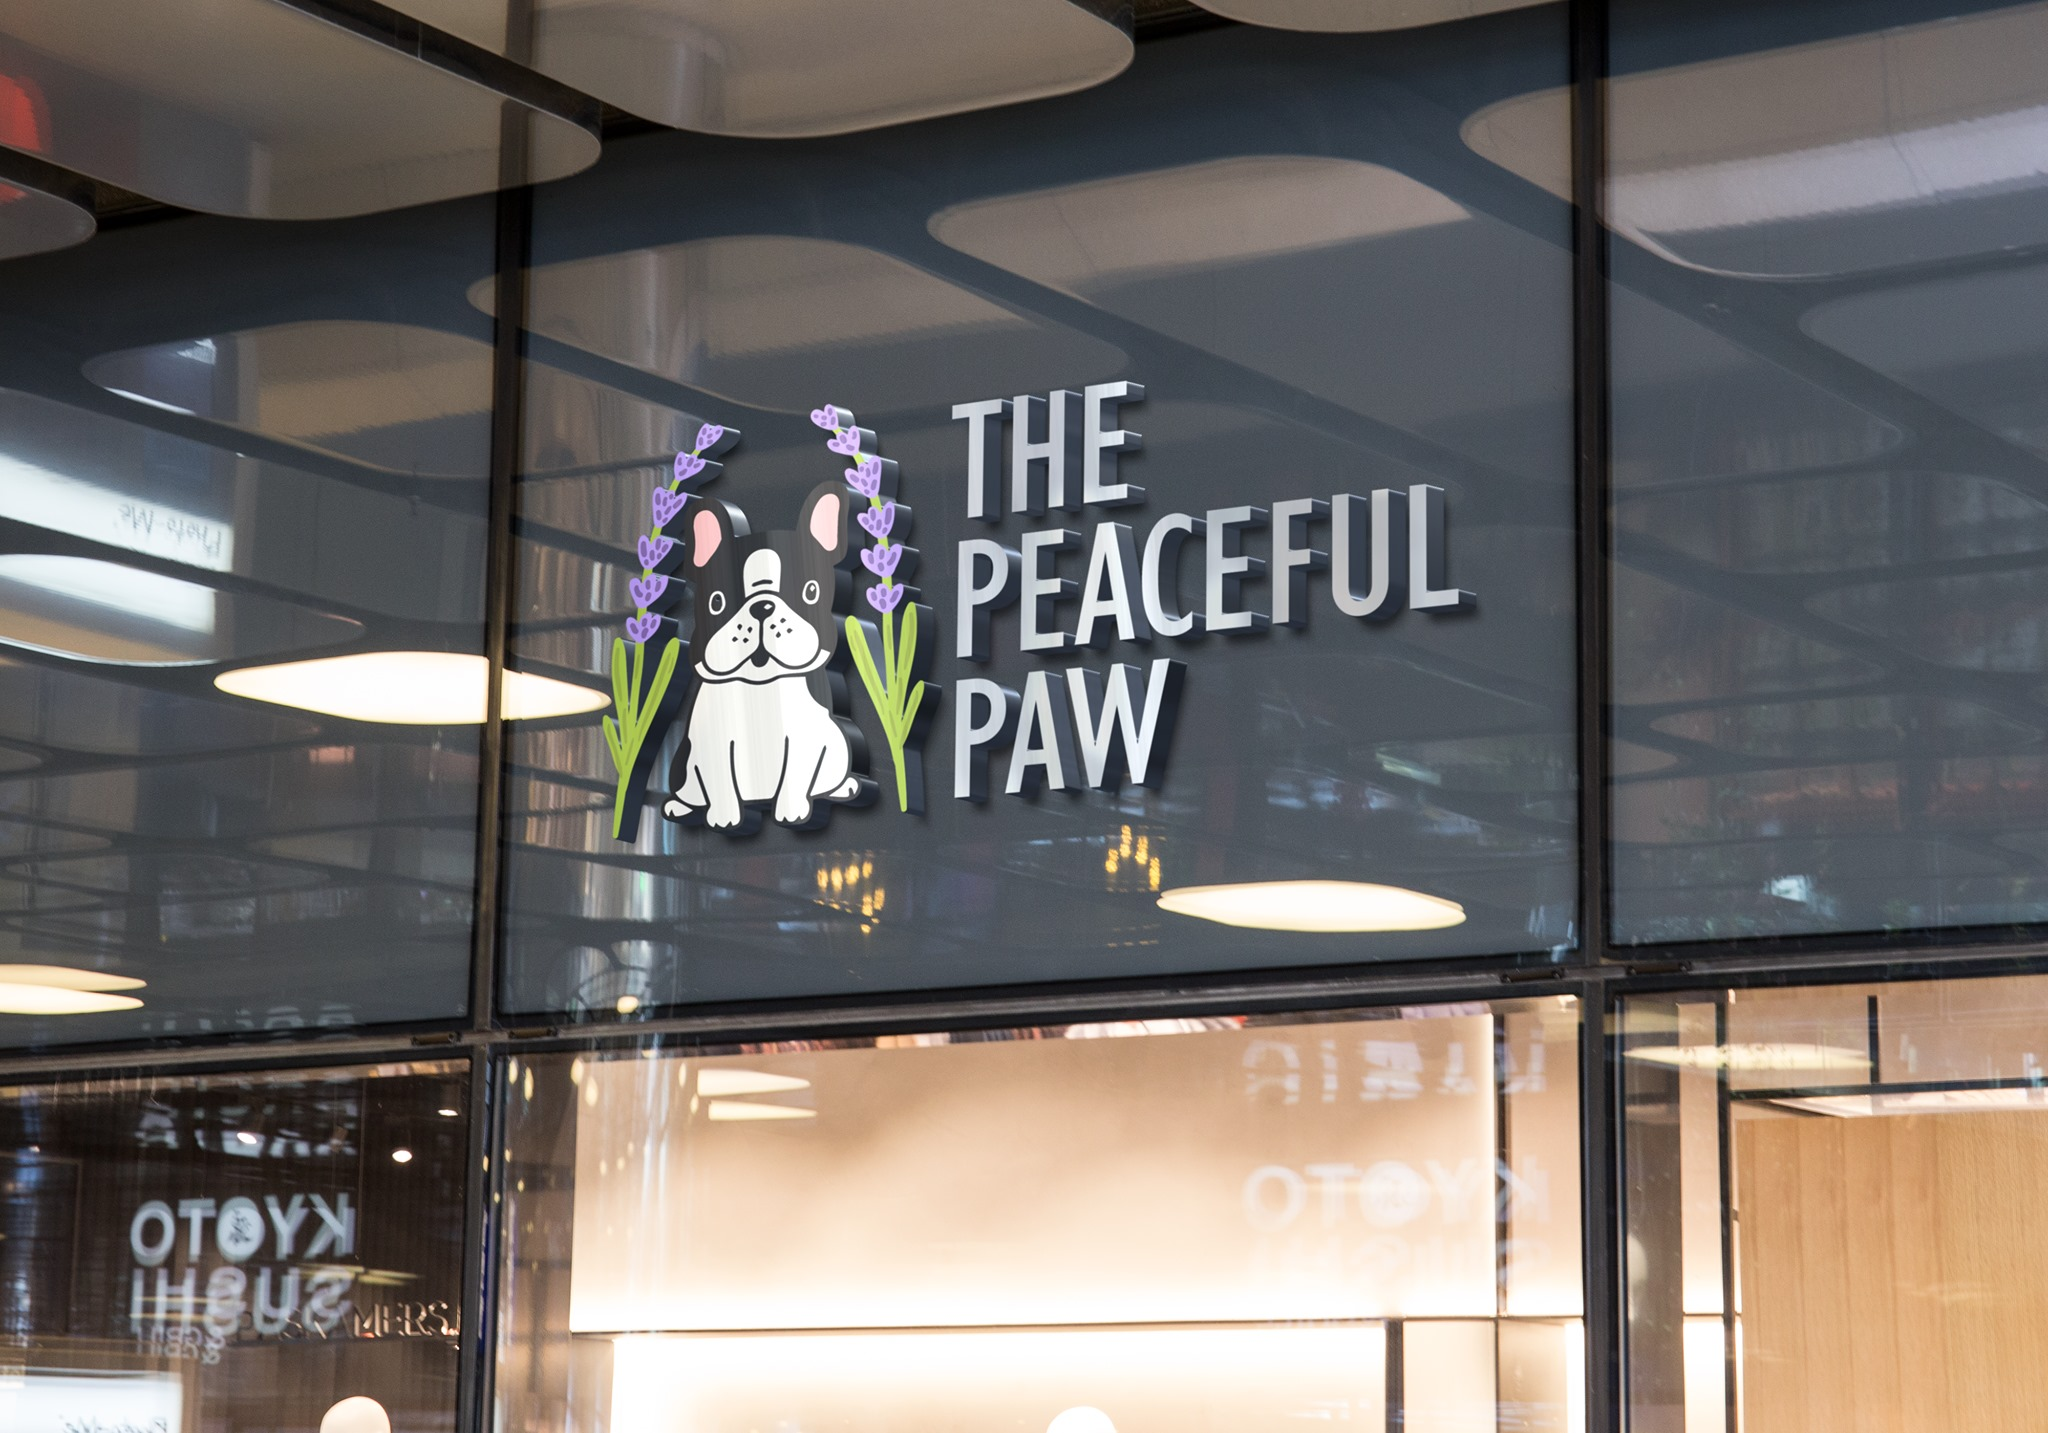 The Peaceful Paw